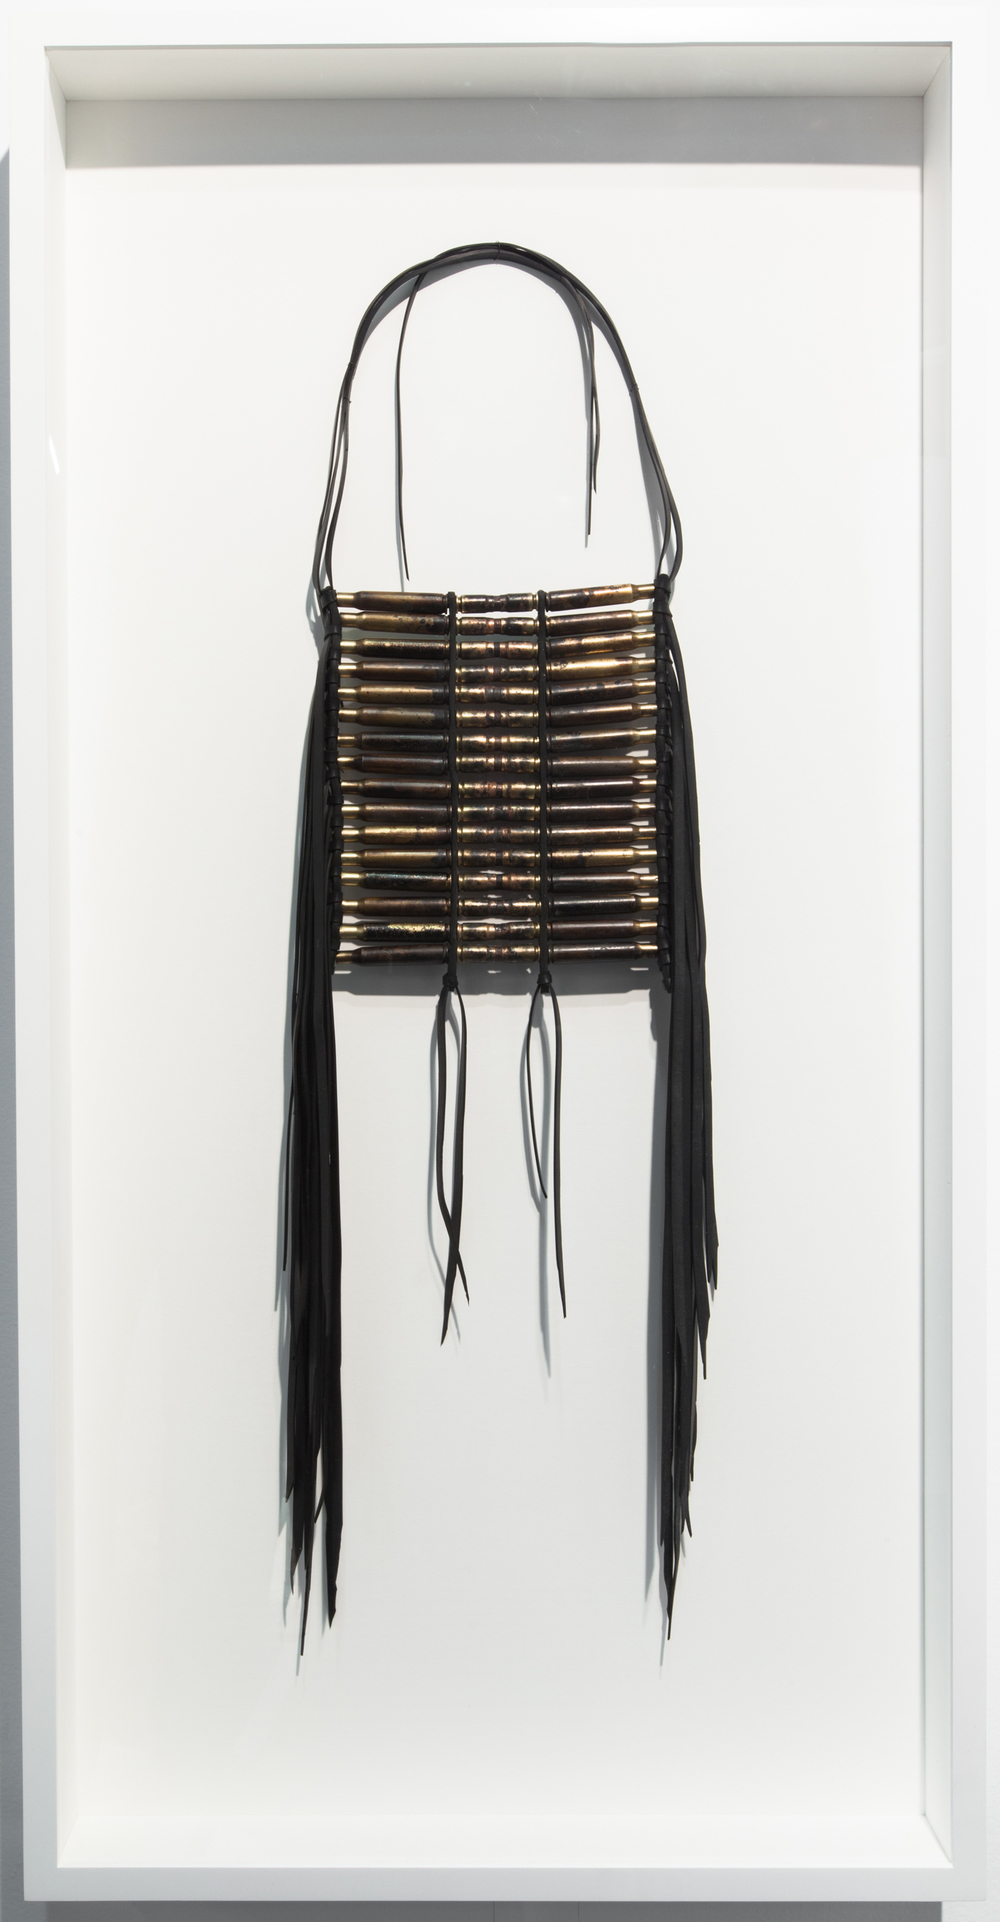 Dave Cole-Breastplate No.8  (after Caddo artifact, date unknown, from a photograph dated 1898)-2013-Military Surplus Gasketing, Butyl Rubber, Military Cartridges, Recovered Projectiles-41x21x3.75-framed.jpg